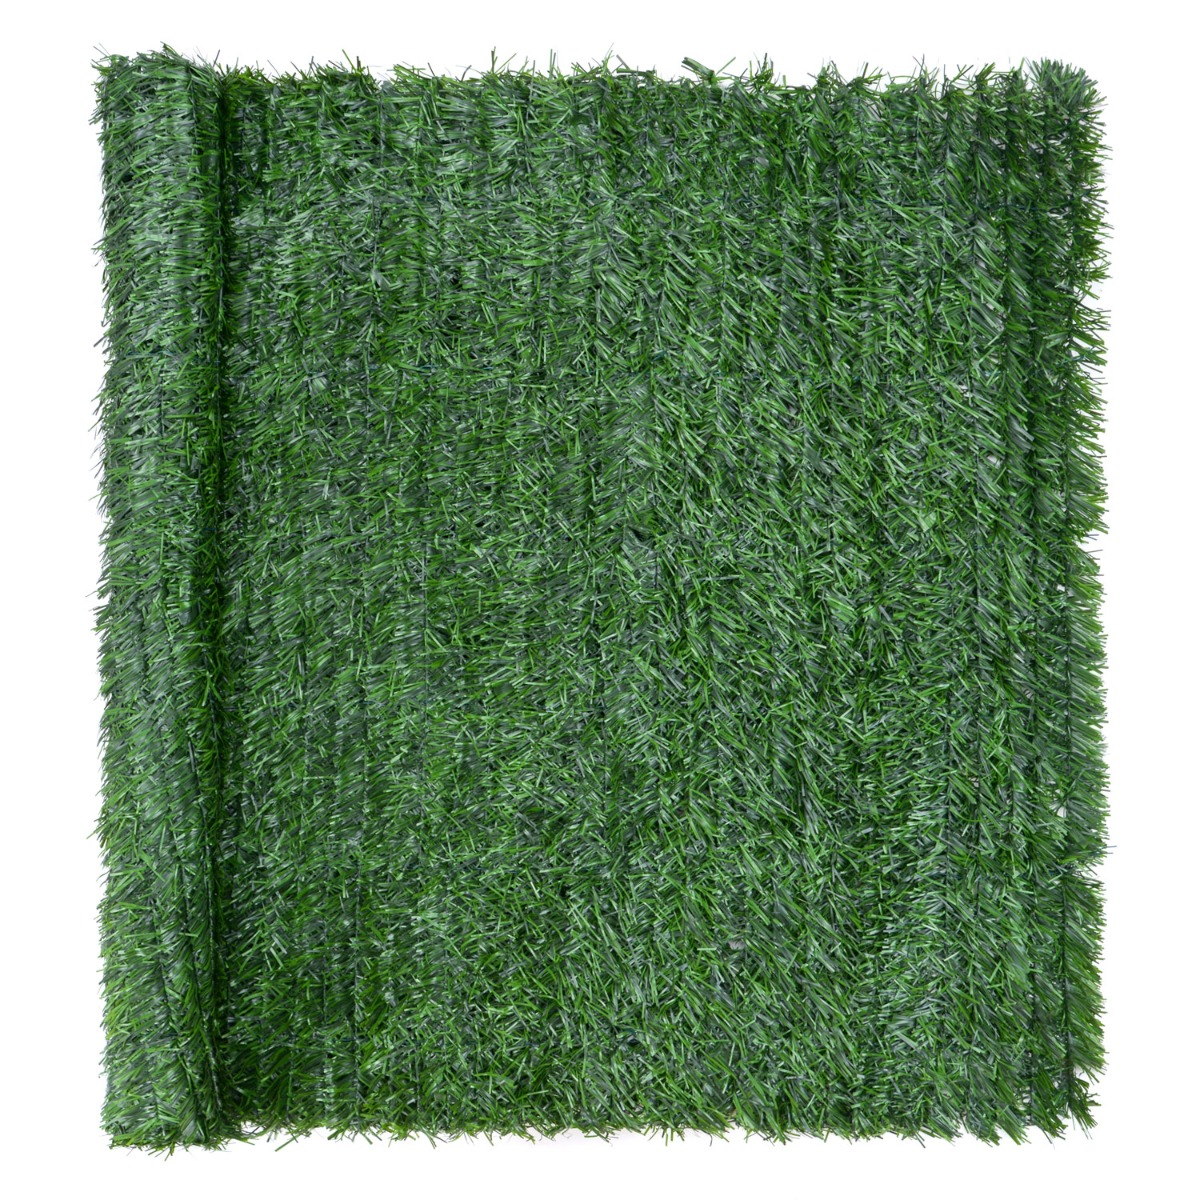 Image of Conifer Artificial Hedge Rolls (8 Pack)